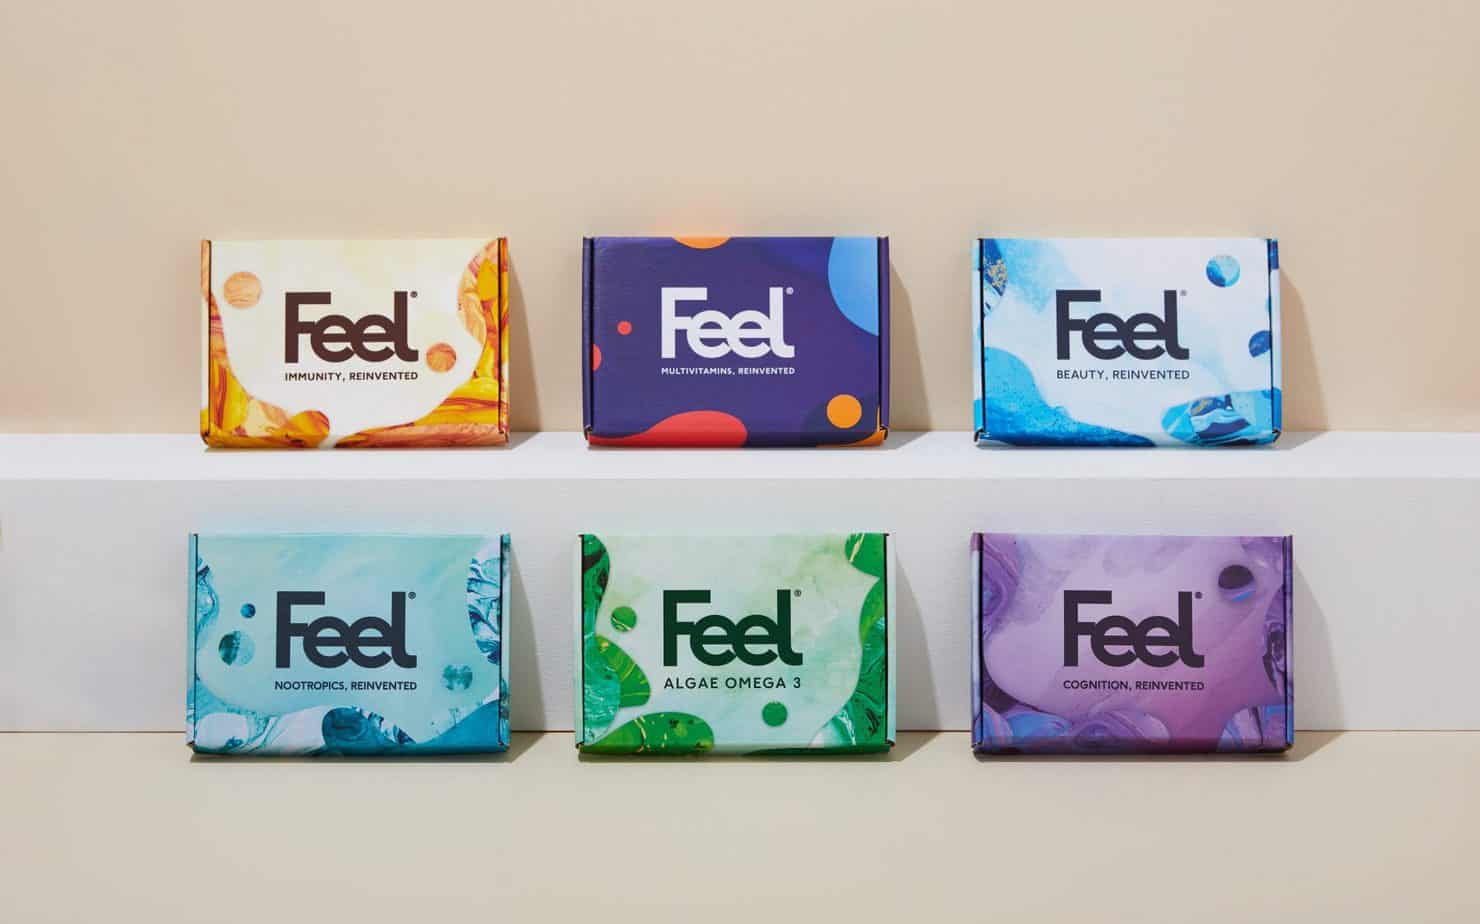 Feel products